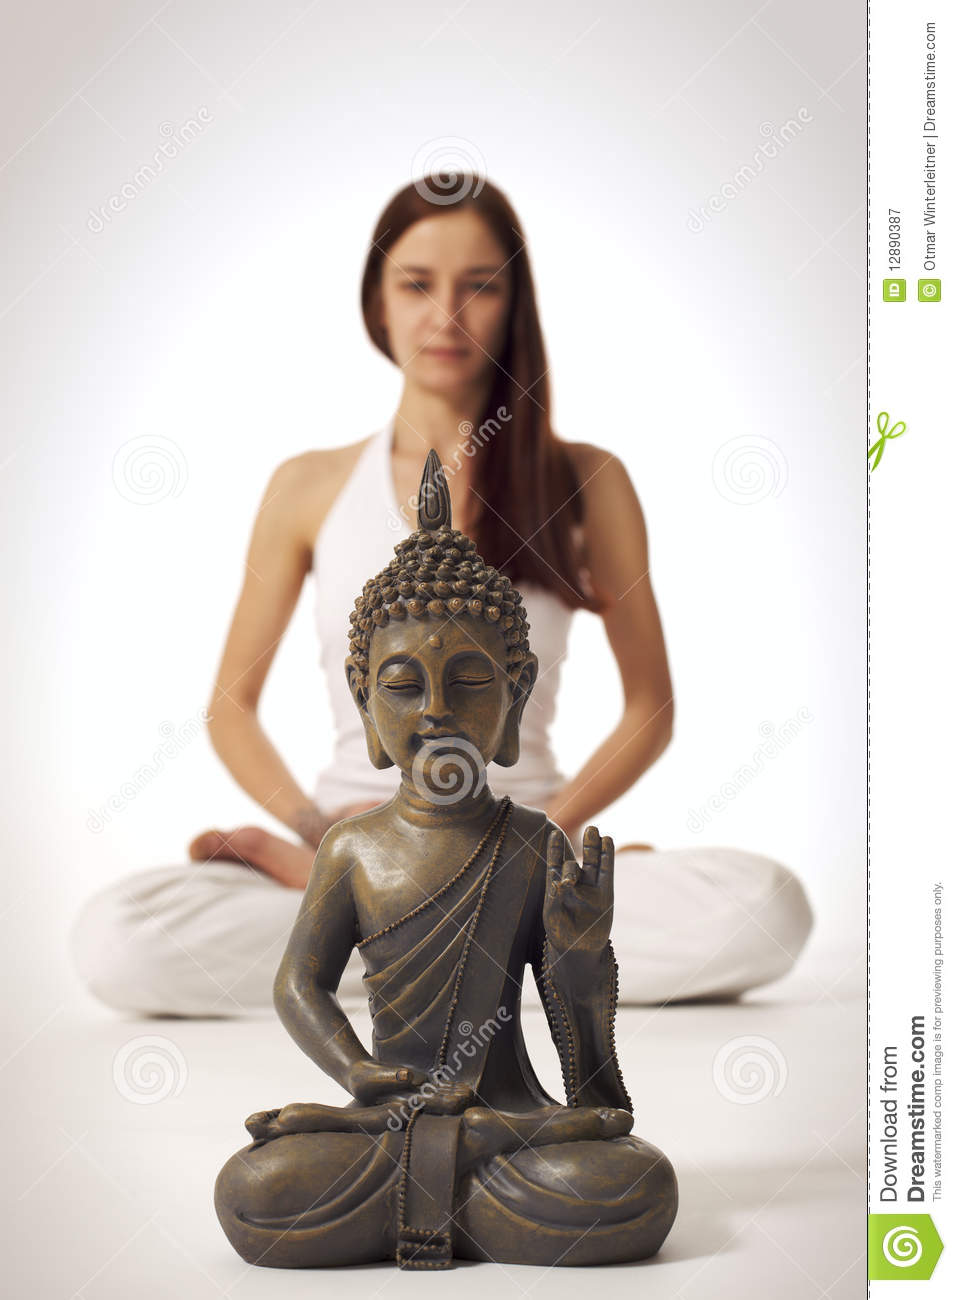 buddhist single women in carsonville Meet single buddhist women in oroville are you single in oroville and looking for your soul mate, the person who completes you zoosk online dating makes it easy to connect with single buddhist women.